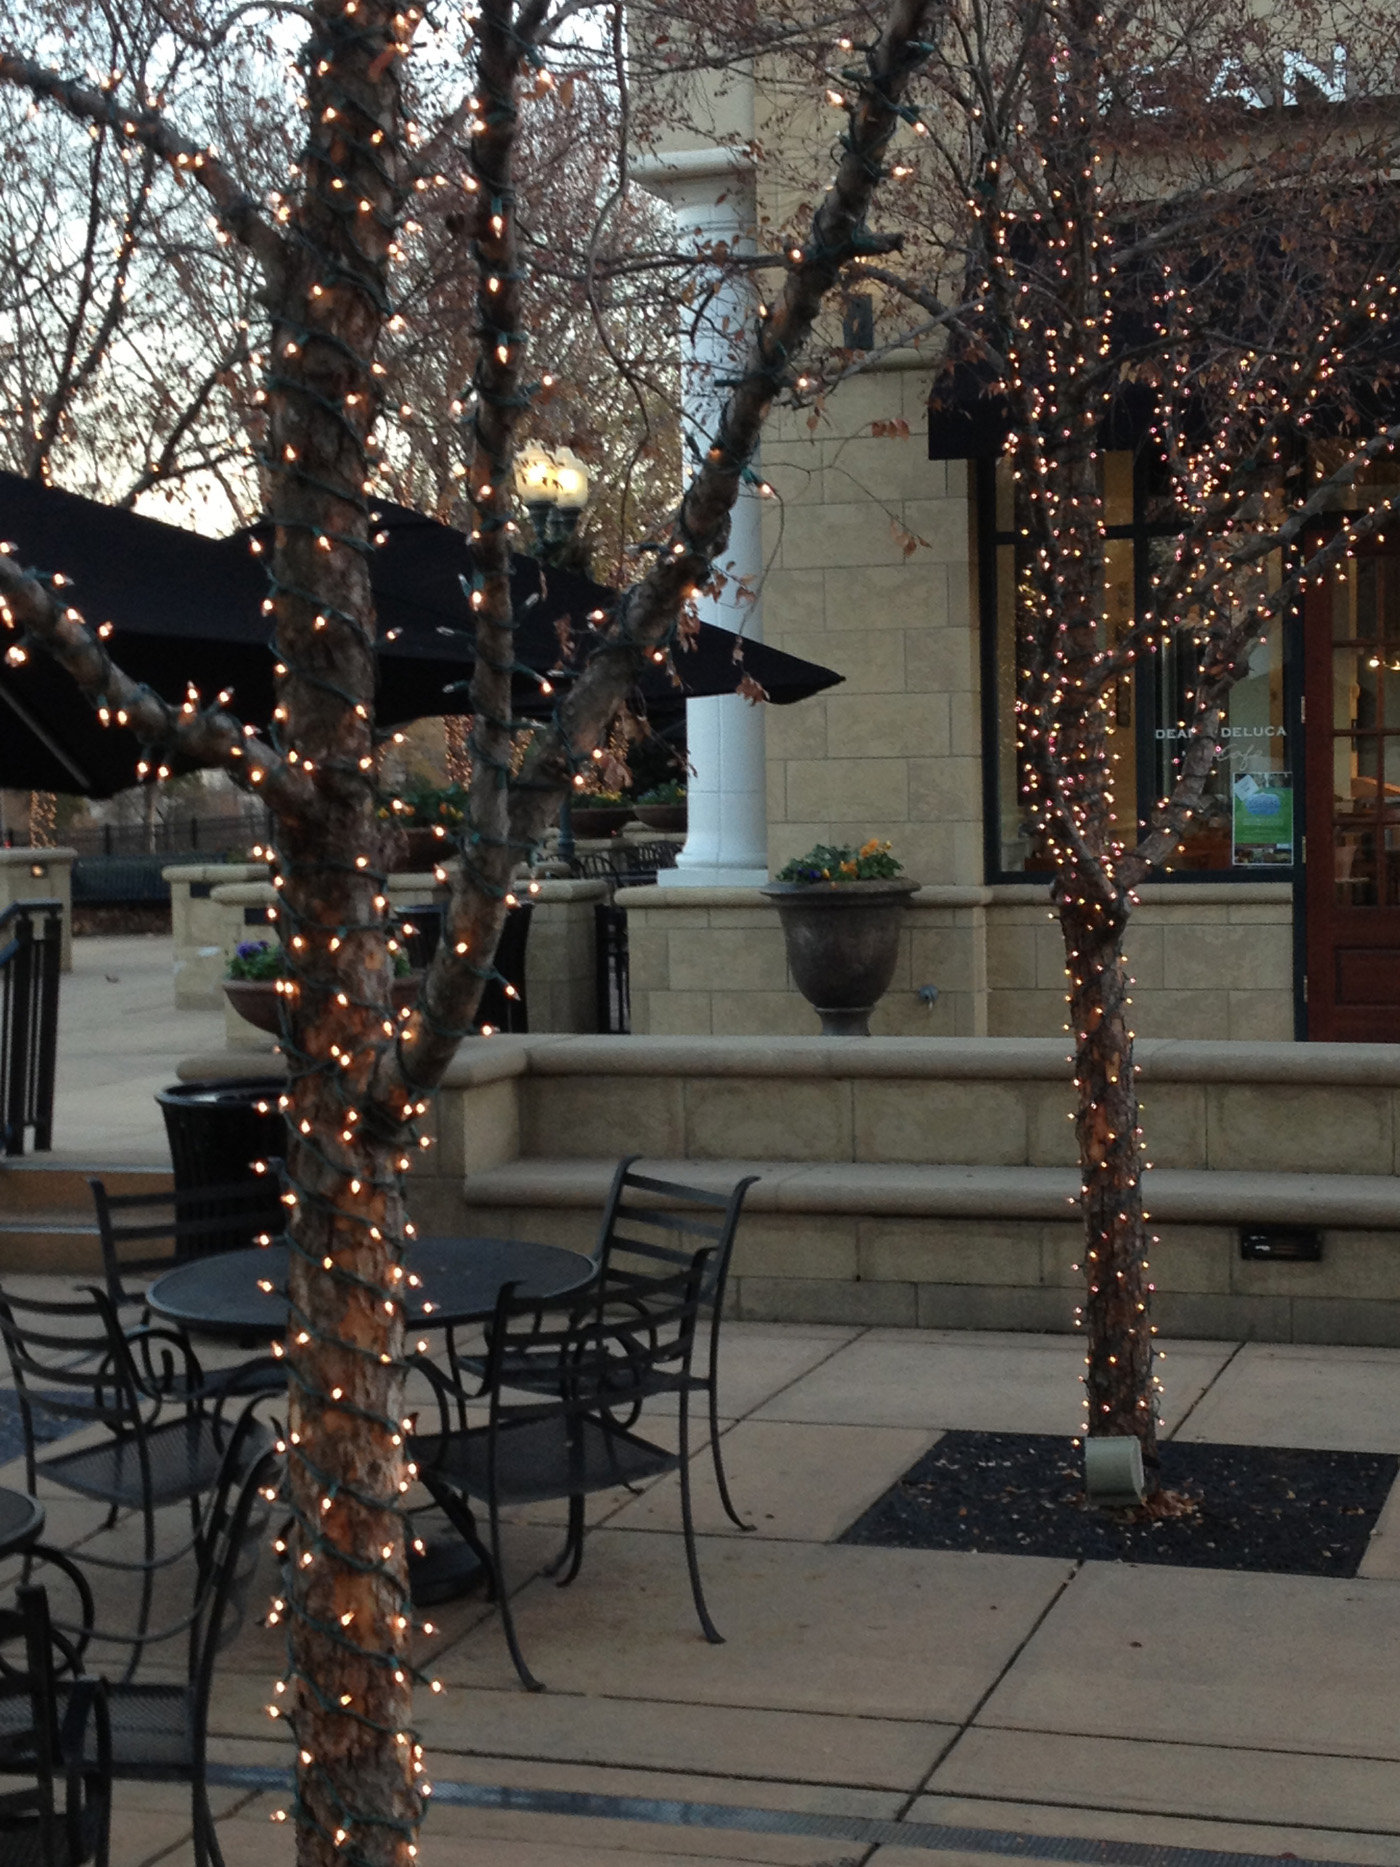 Outdoor lighting company lightscapes southern outdoor lighting - With White Led String Lights And The Proper Application We Can Turn Your Dining Patio Into A Cheery Upscale Space That Makes Every Guest Feel Like Today Is